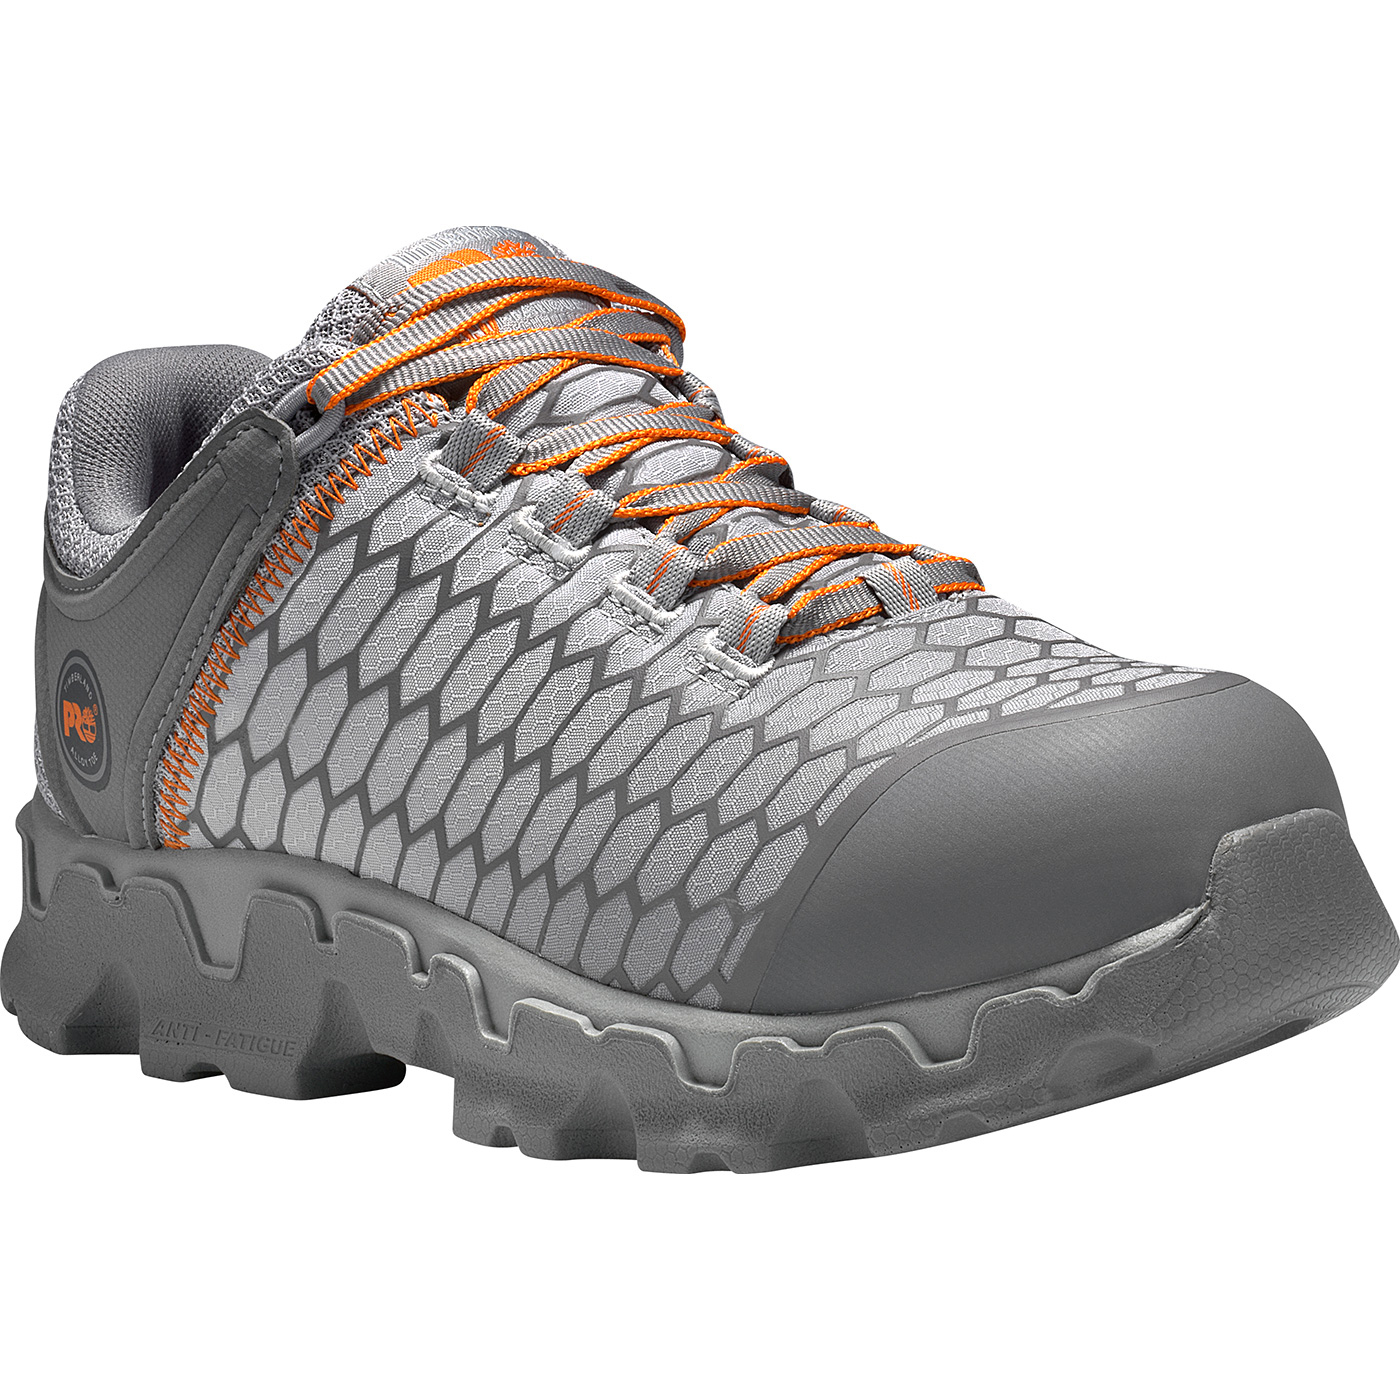 b2fb2ac13f7 QUICKFIT COLLECTION: Timberland PRO Powertrain Sport Women's CSA Alloy Toe  Static-Dissipative Work Shoe